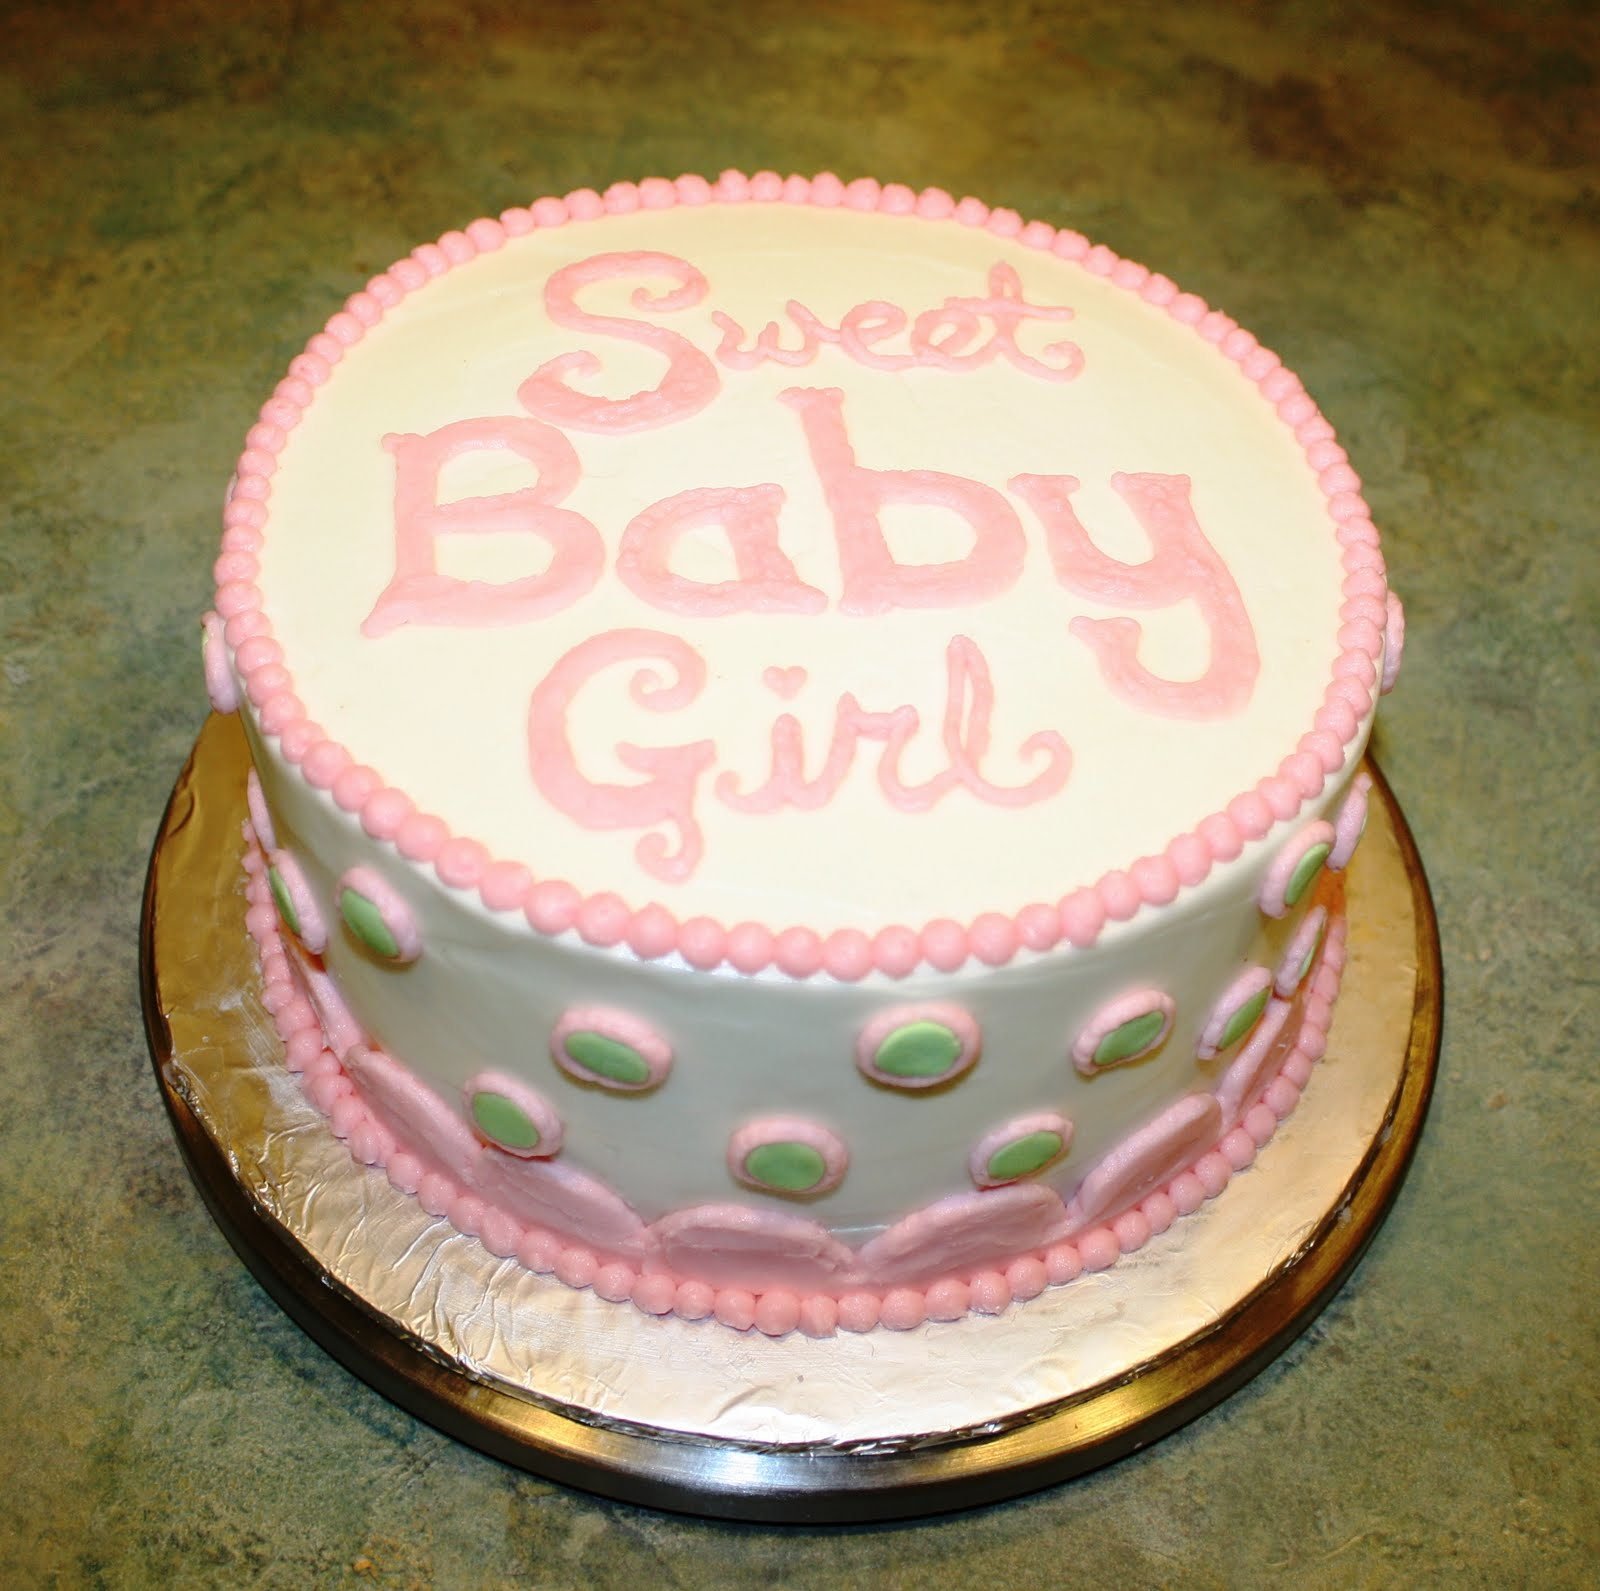 party cakes pink green baby shower cake